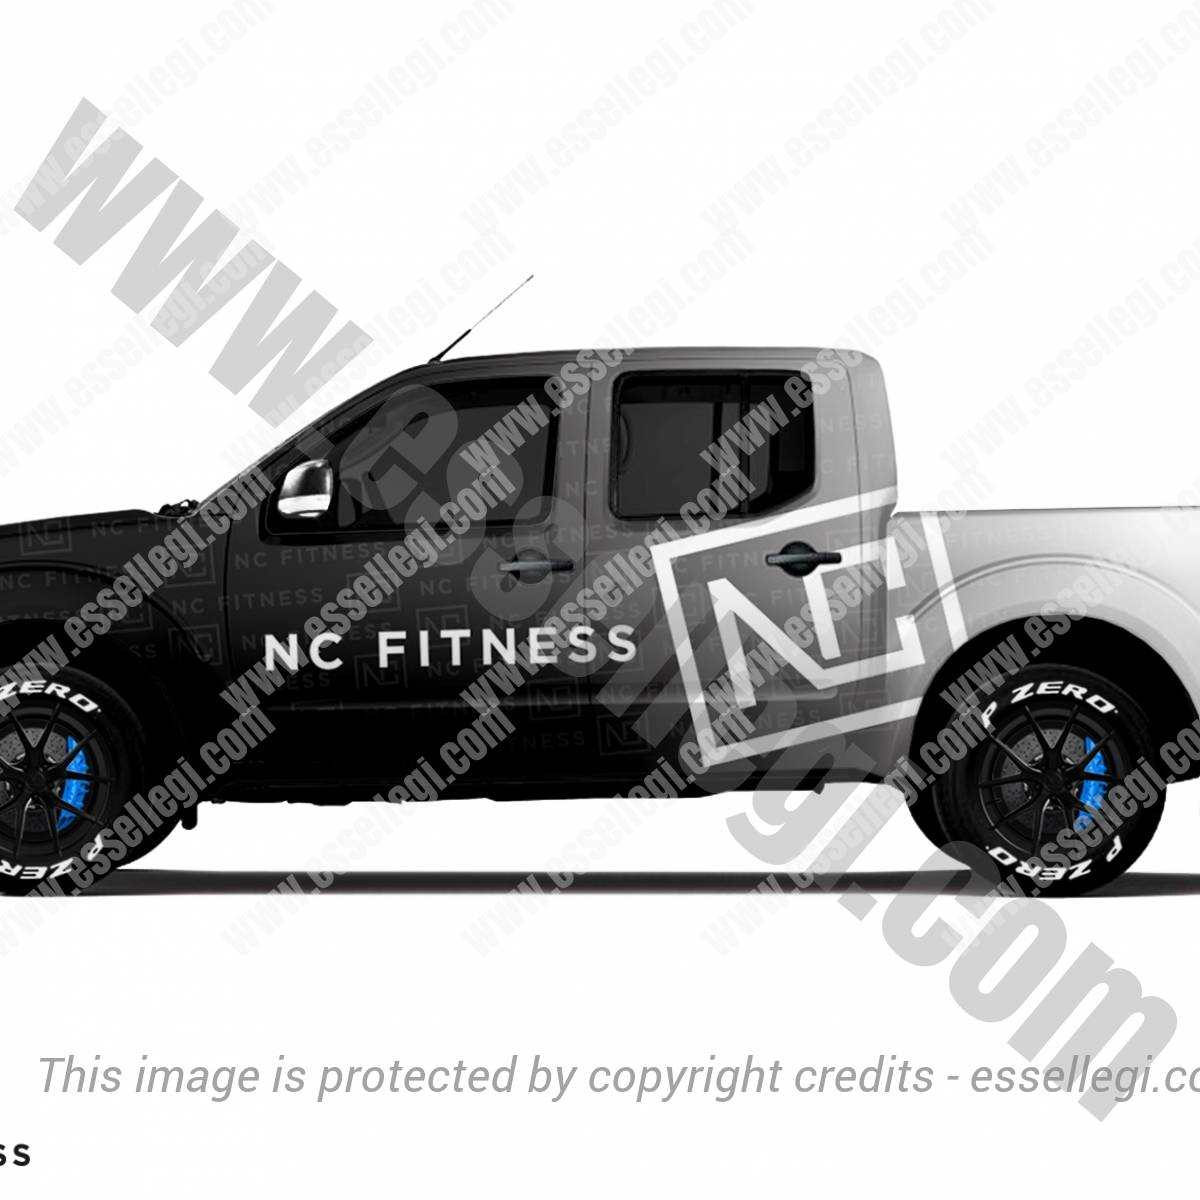 NC FITNESS | TRUCK WRAP DESIGN 🇦🇺